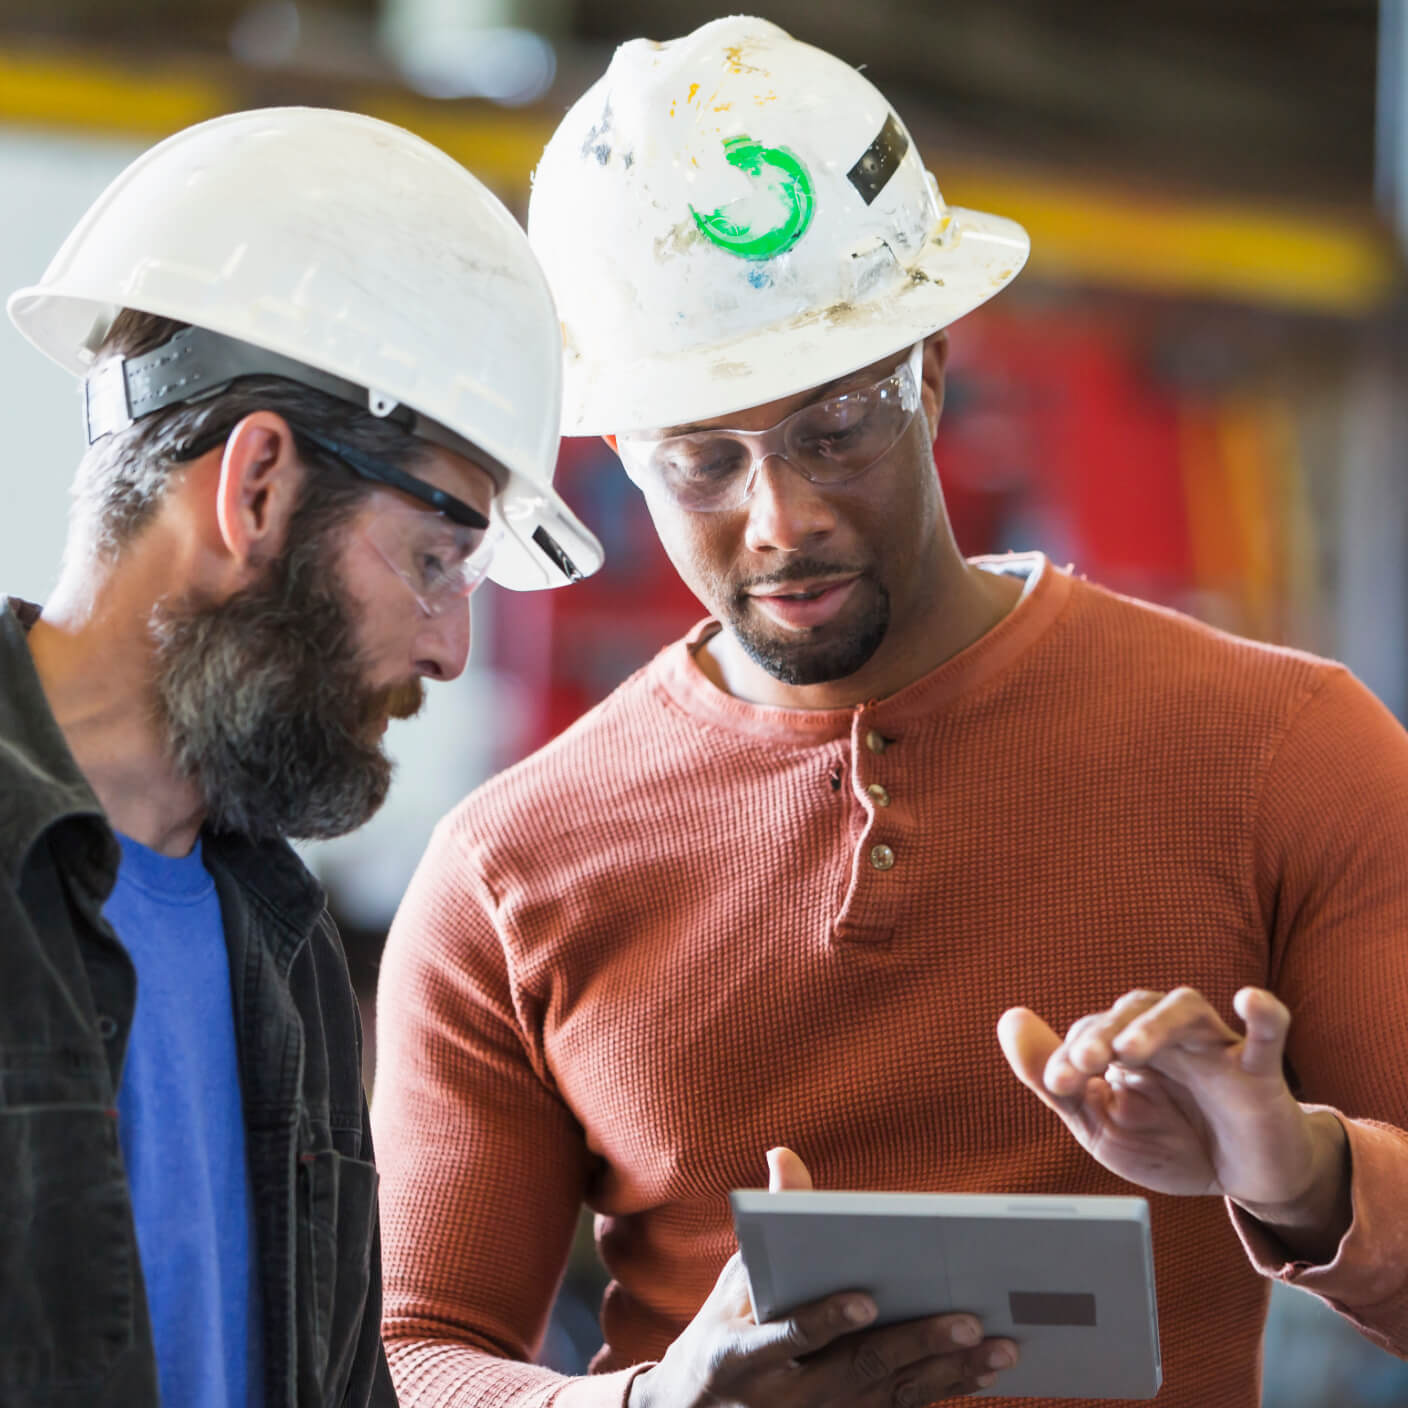 two workers wearing hard hats looking at an ipad